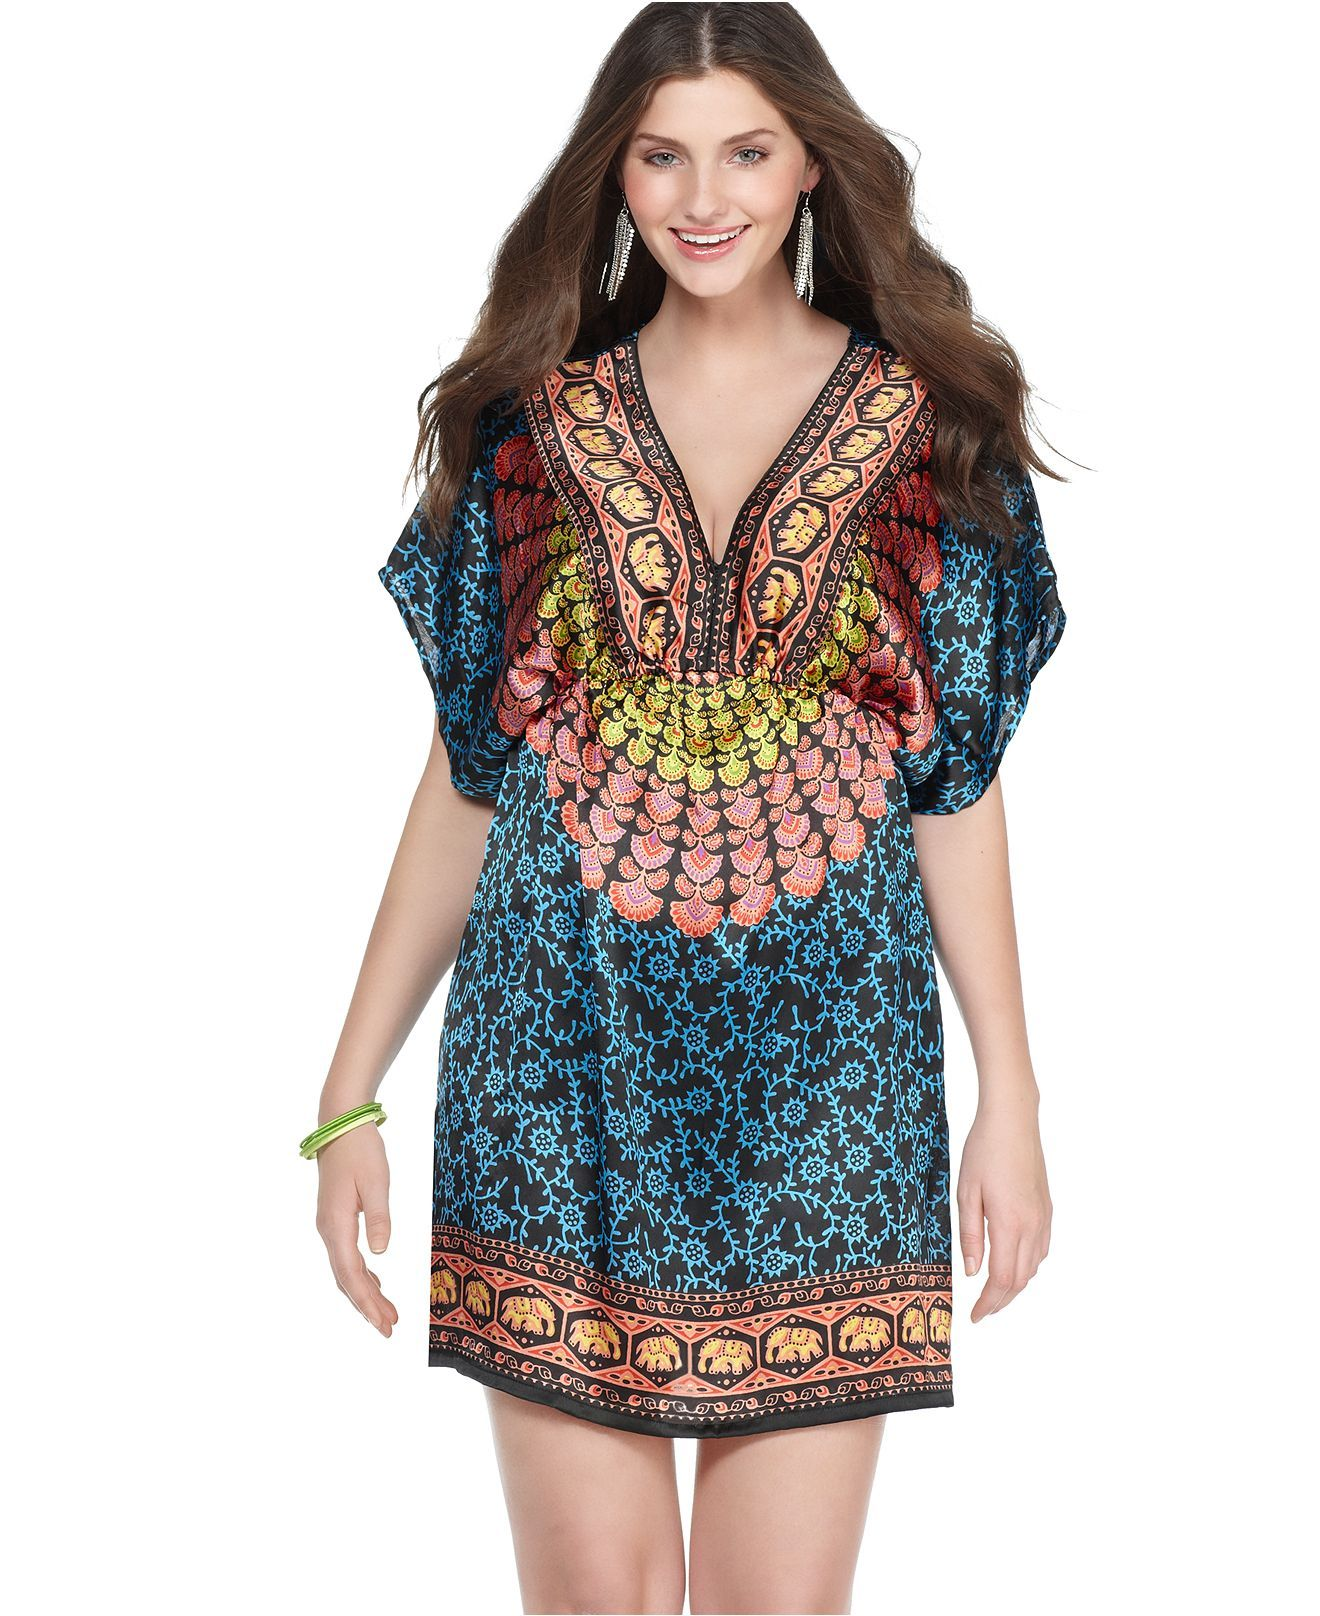 American rag plus size dress short sleeve printed empire fashion